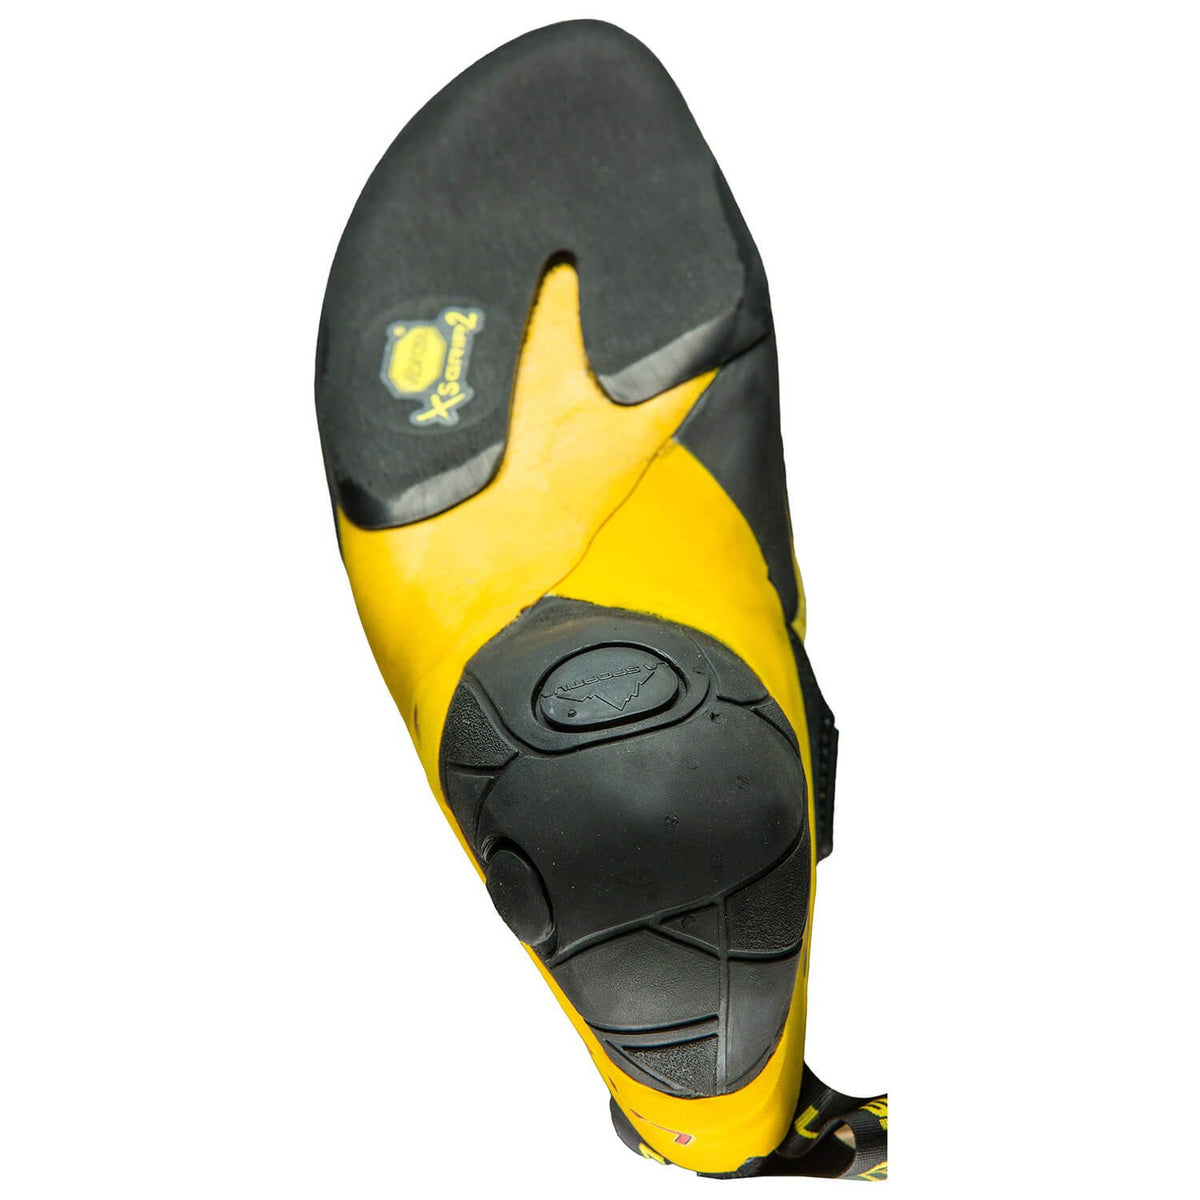 La Sportiva Skwama climbing shoe, view of the sole